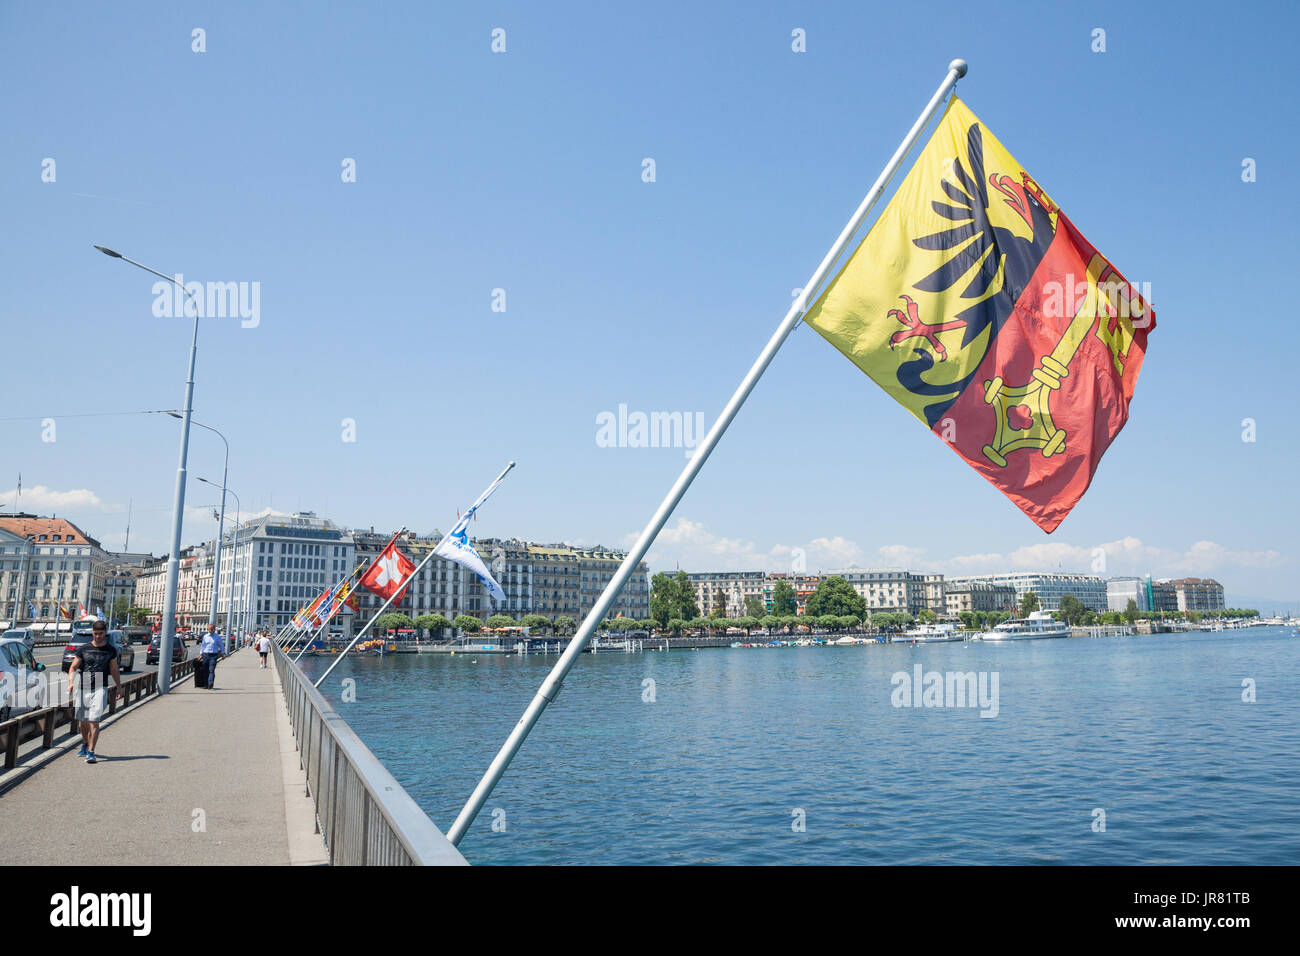 Flag of the Geneva Canton and flag of Switerland in the city center of Geneva on the Mont Blanc Bridge (Pont du Mont Blanc), on the Leman lake  Pictur - Stock Image